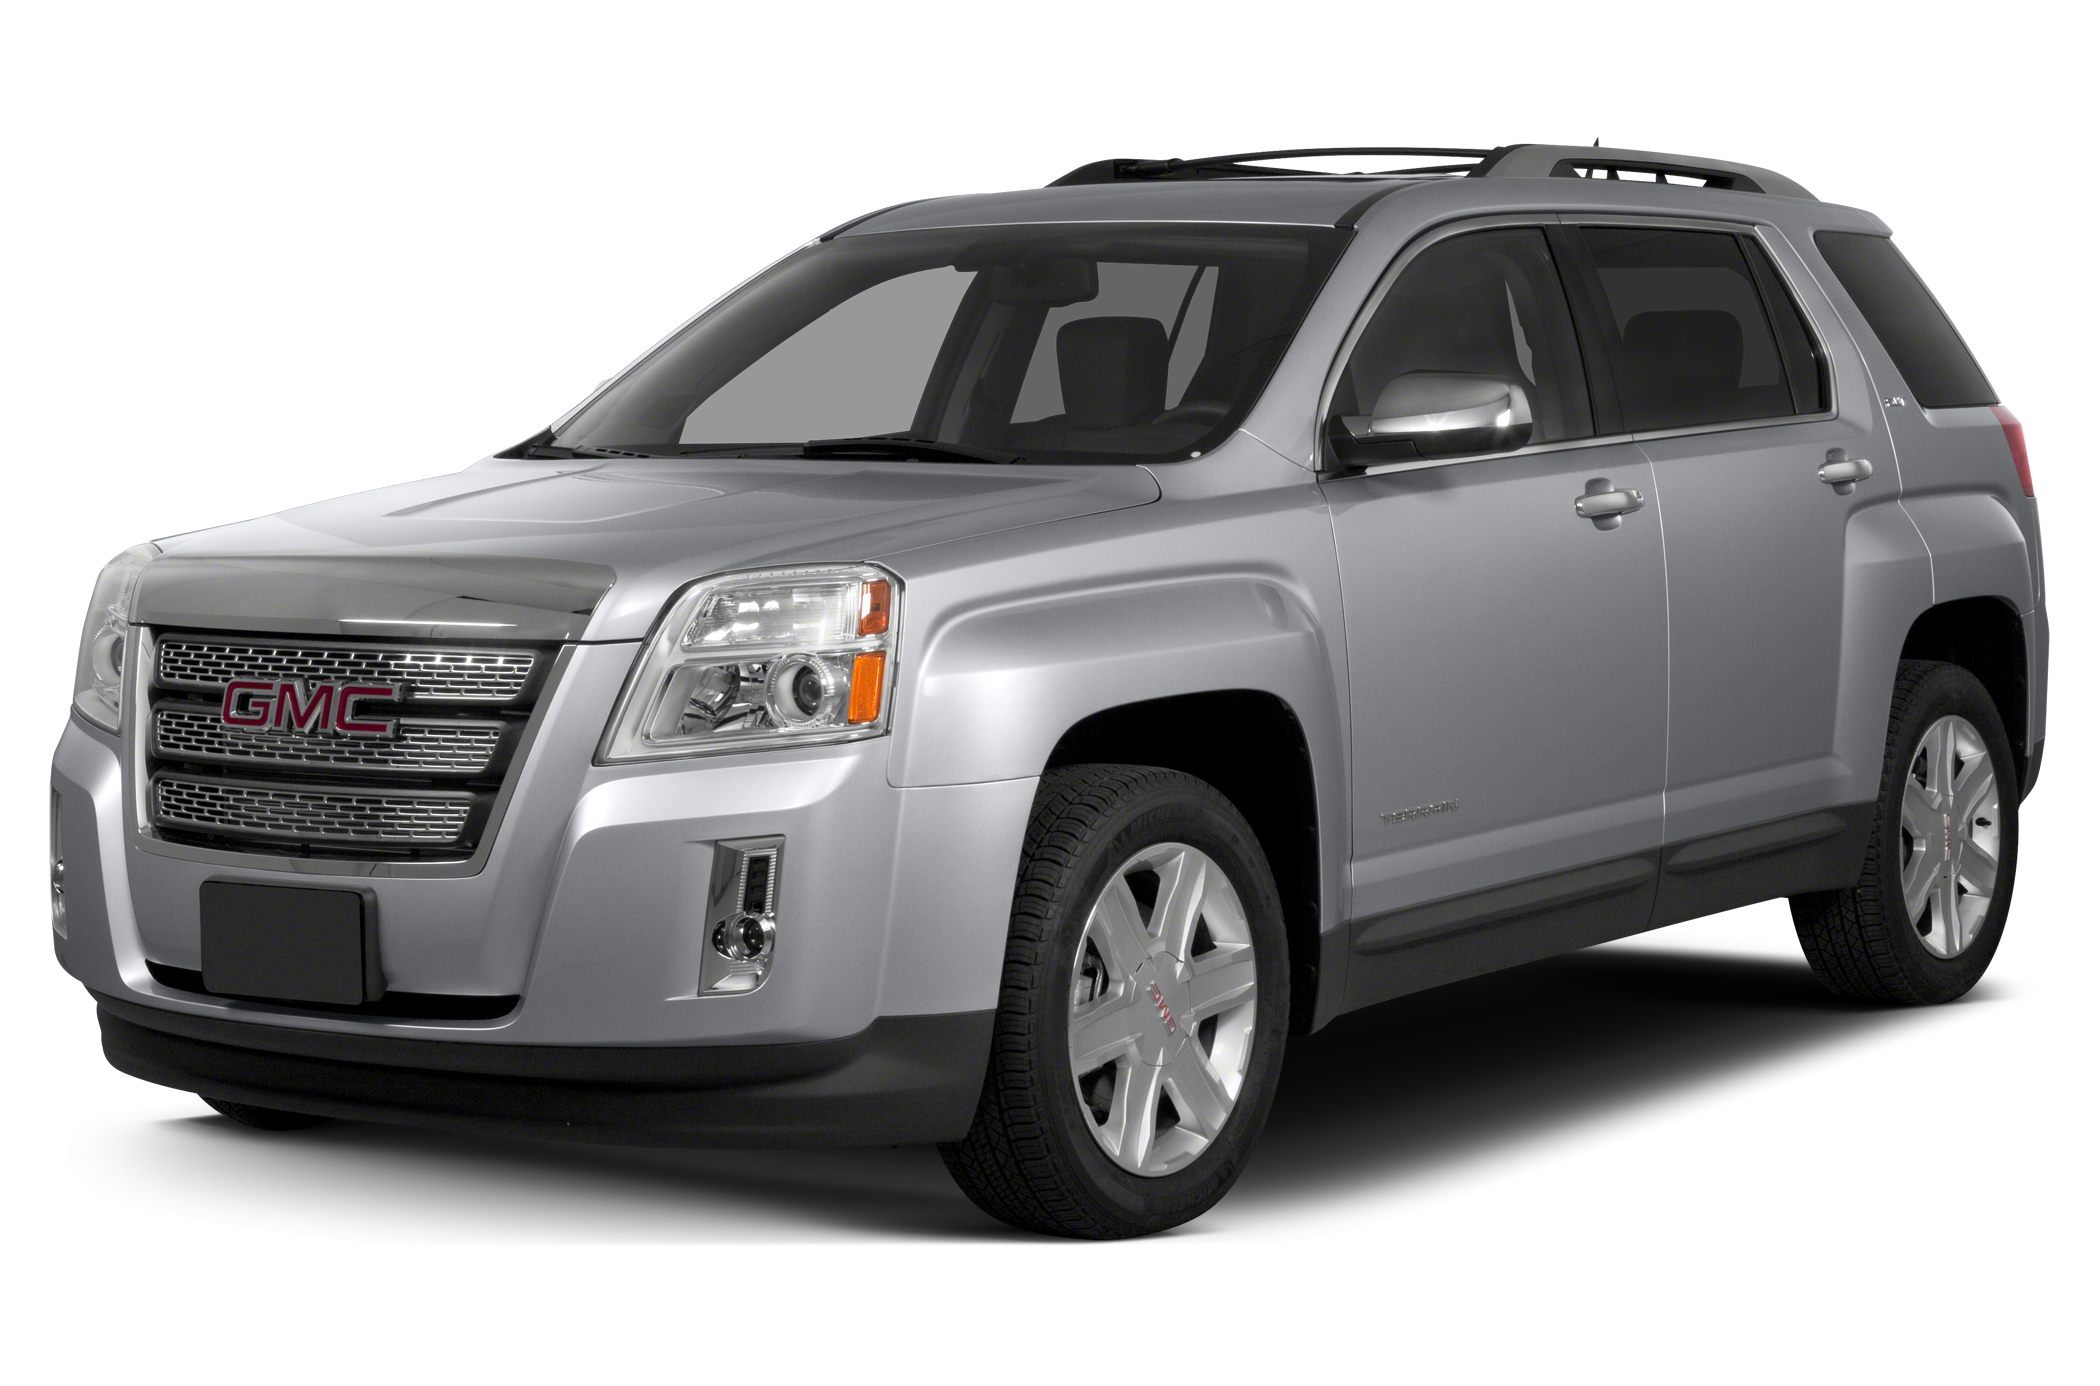 2015 GMC Terrain SLE-1 SUV for sale in Clinton for $27,980 with 0 miles.